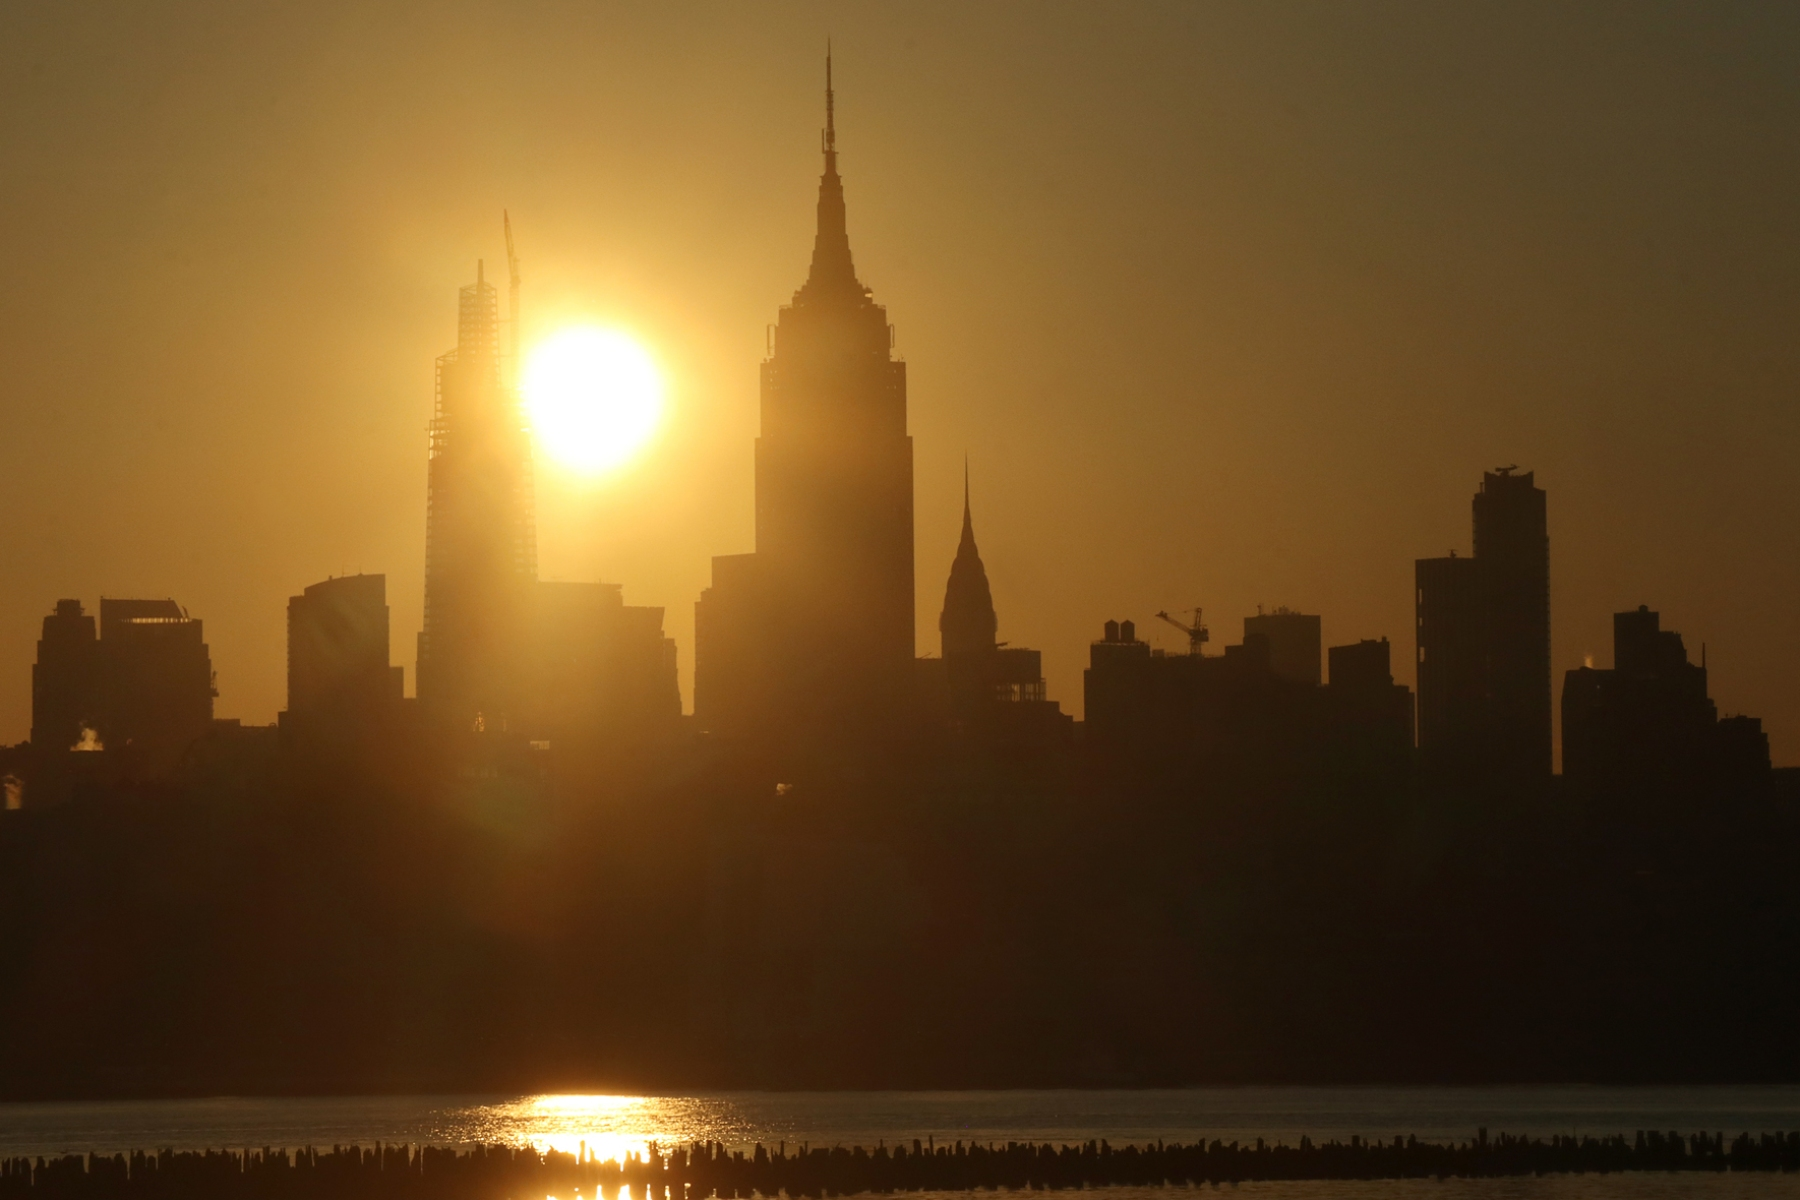 JERSEY CITY, NJ - JUNE 26: The sun rises behind the Chrysler Building, Empire State Building, and One Vanderbilt in New York City on June 26, 2020 as seen from Jersey City, NJ. (Photo by Gary Hershorn/Getty Images)